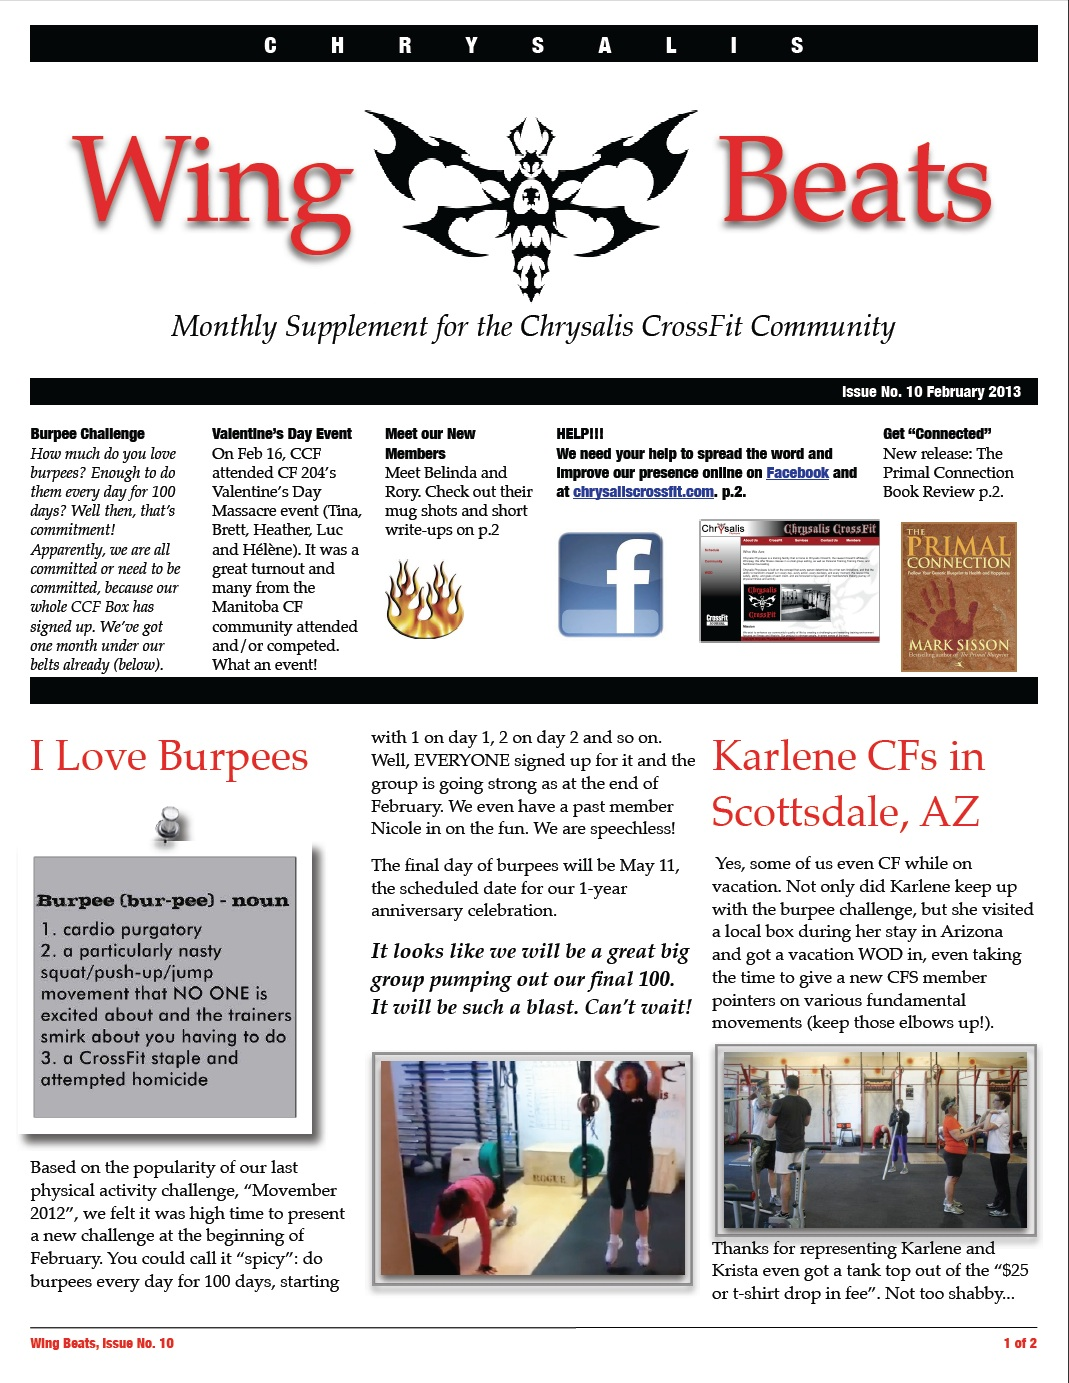 WingBeats Issue #10 - February 2013